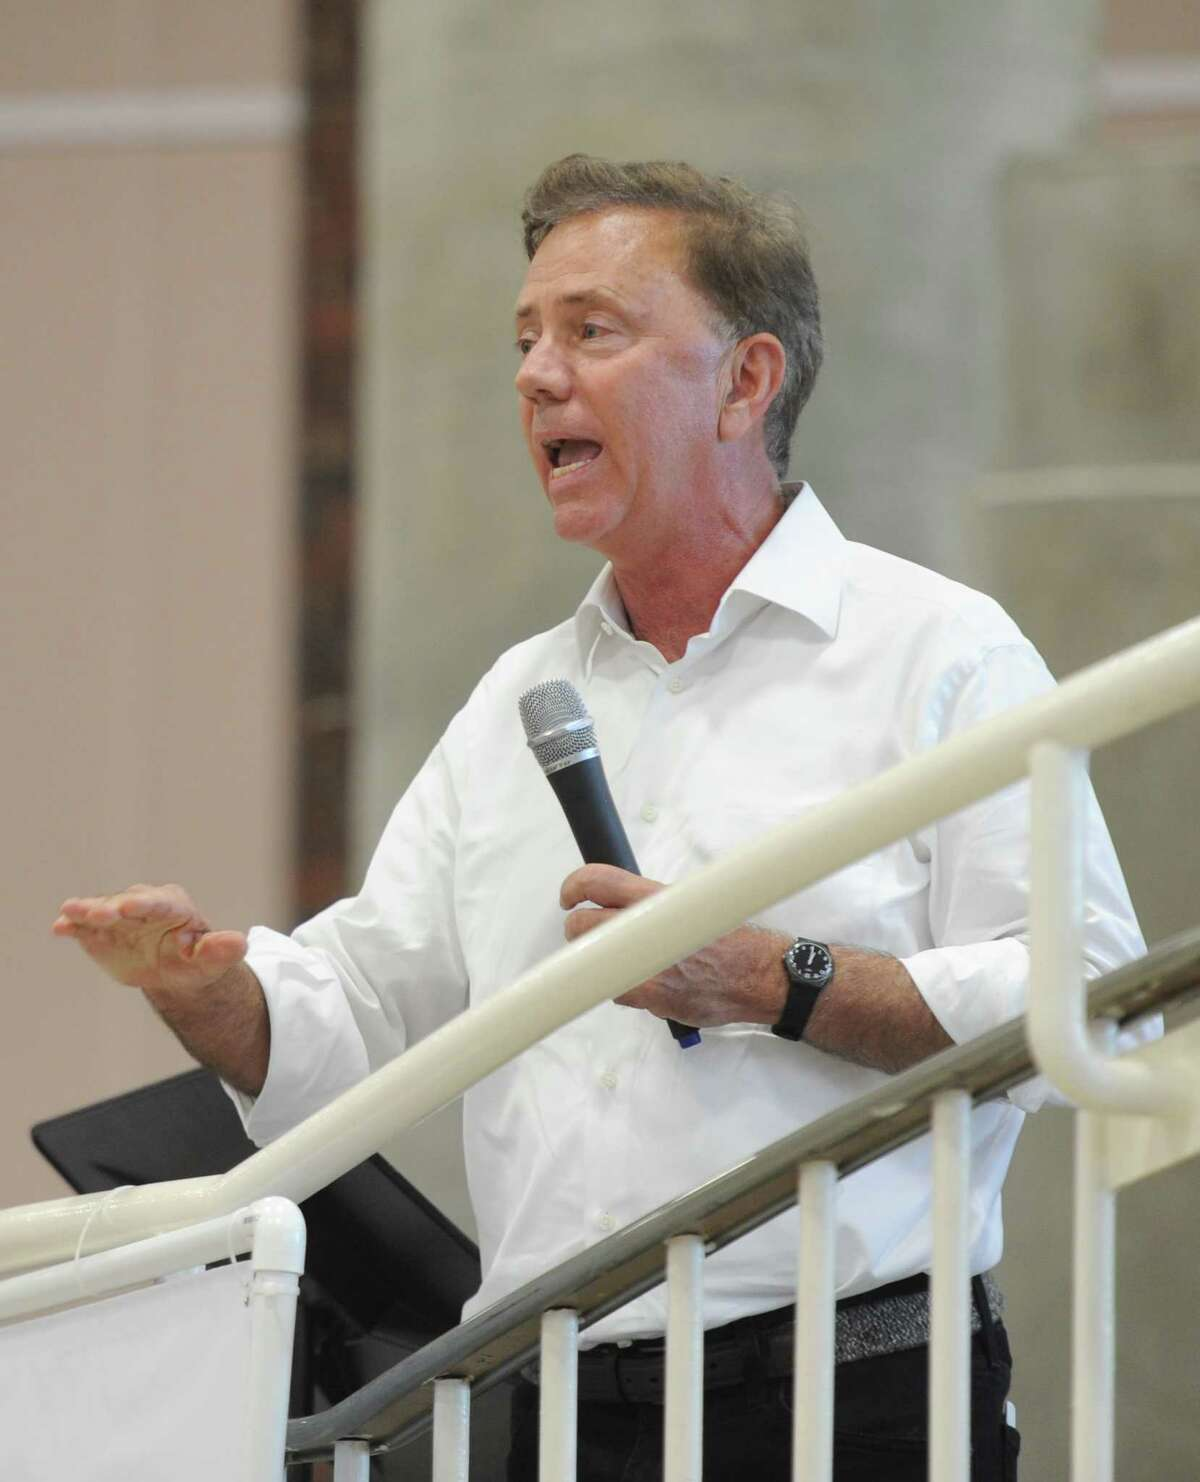 Democratic gubernatorial candidate Ned Lamont speaks at the Greenwich Democratic Town Committee Cookout and Campaign Rally at Greenwich High School in Greenwich, Conn. Sunday, Sept. 16, 2018. In attendance was gubernatorial candidate Ned Lamont, U.S. Rep. Jim Himes, U.S. Senators Chris Murphy and Richard Blumenthal, State Sen. candidate Alex Bergstein, and State Rep. candidates Laura Kostin and Steve Meskers.